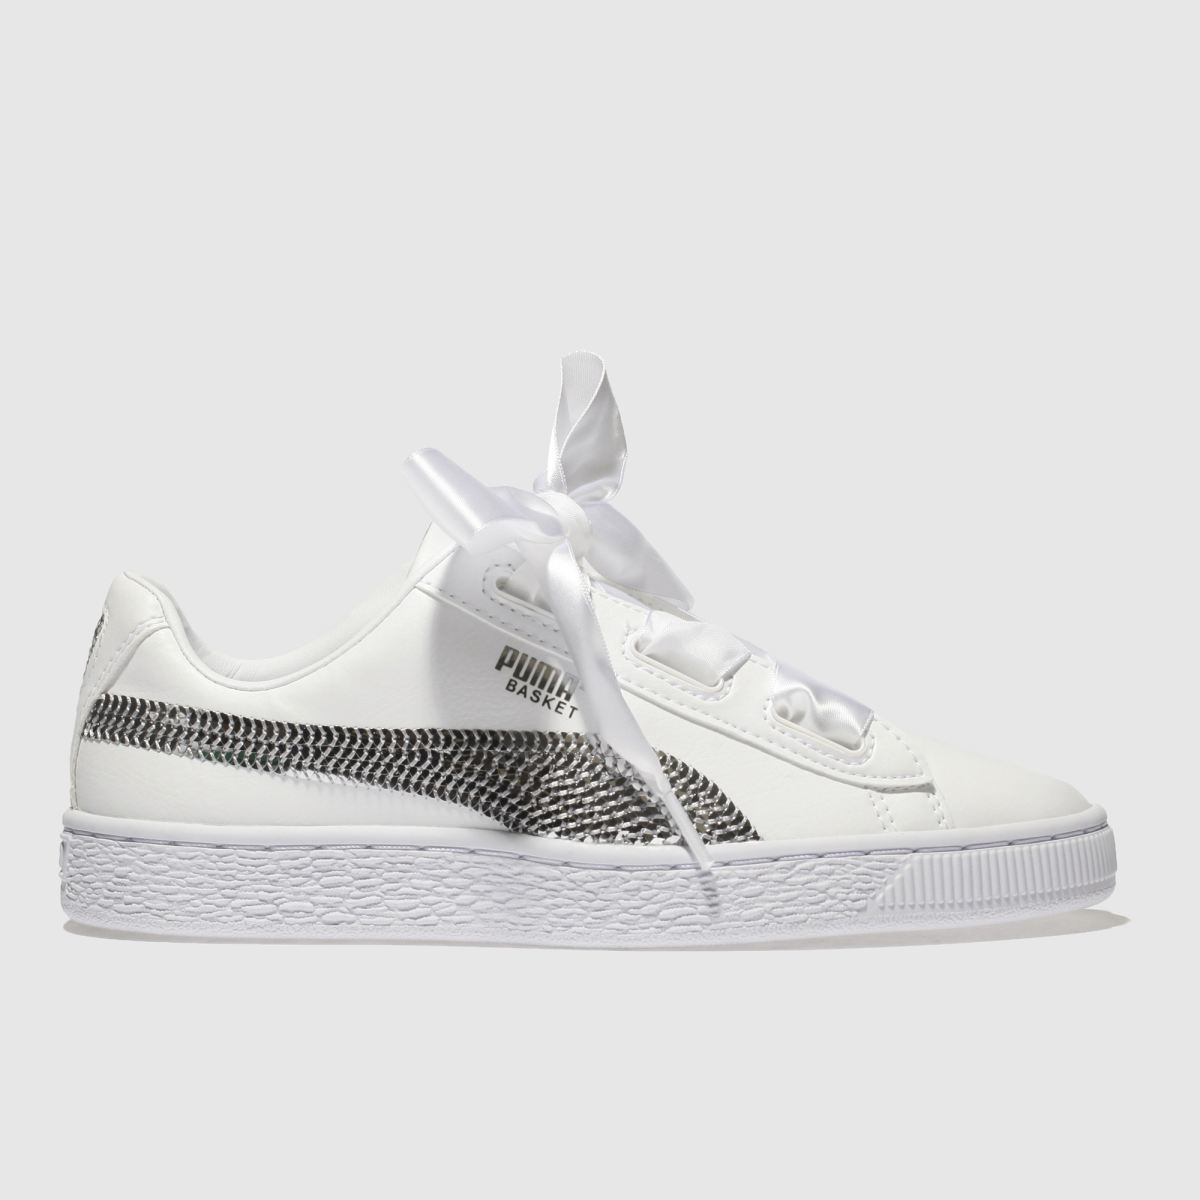 Puma White & Silver Basket Heart Bling Girls Youth Youth